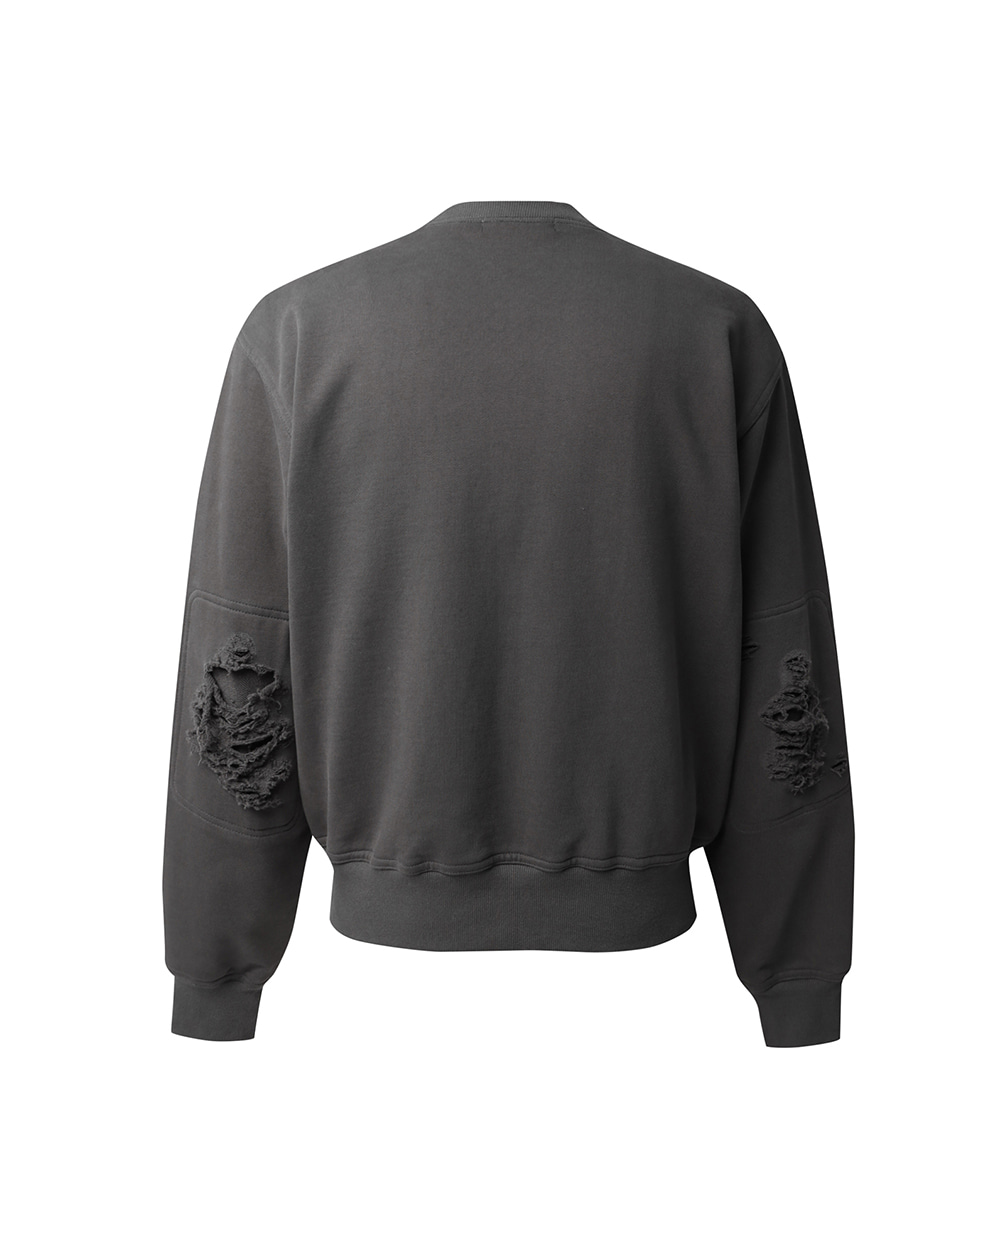 ATE STUDIOS AUTHENTIC SCAR SWEAT SHIRTS (Charcoal)